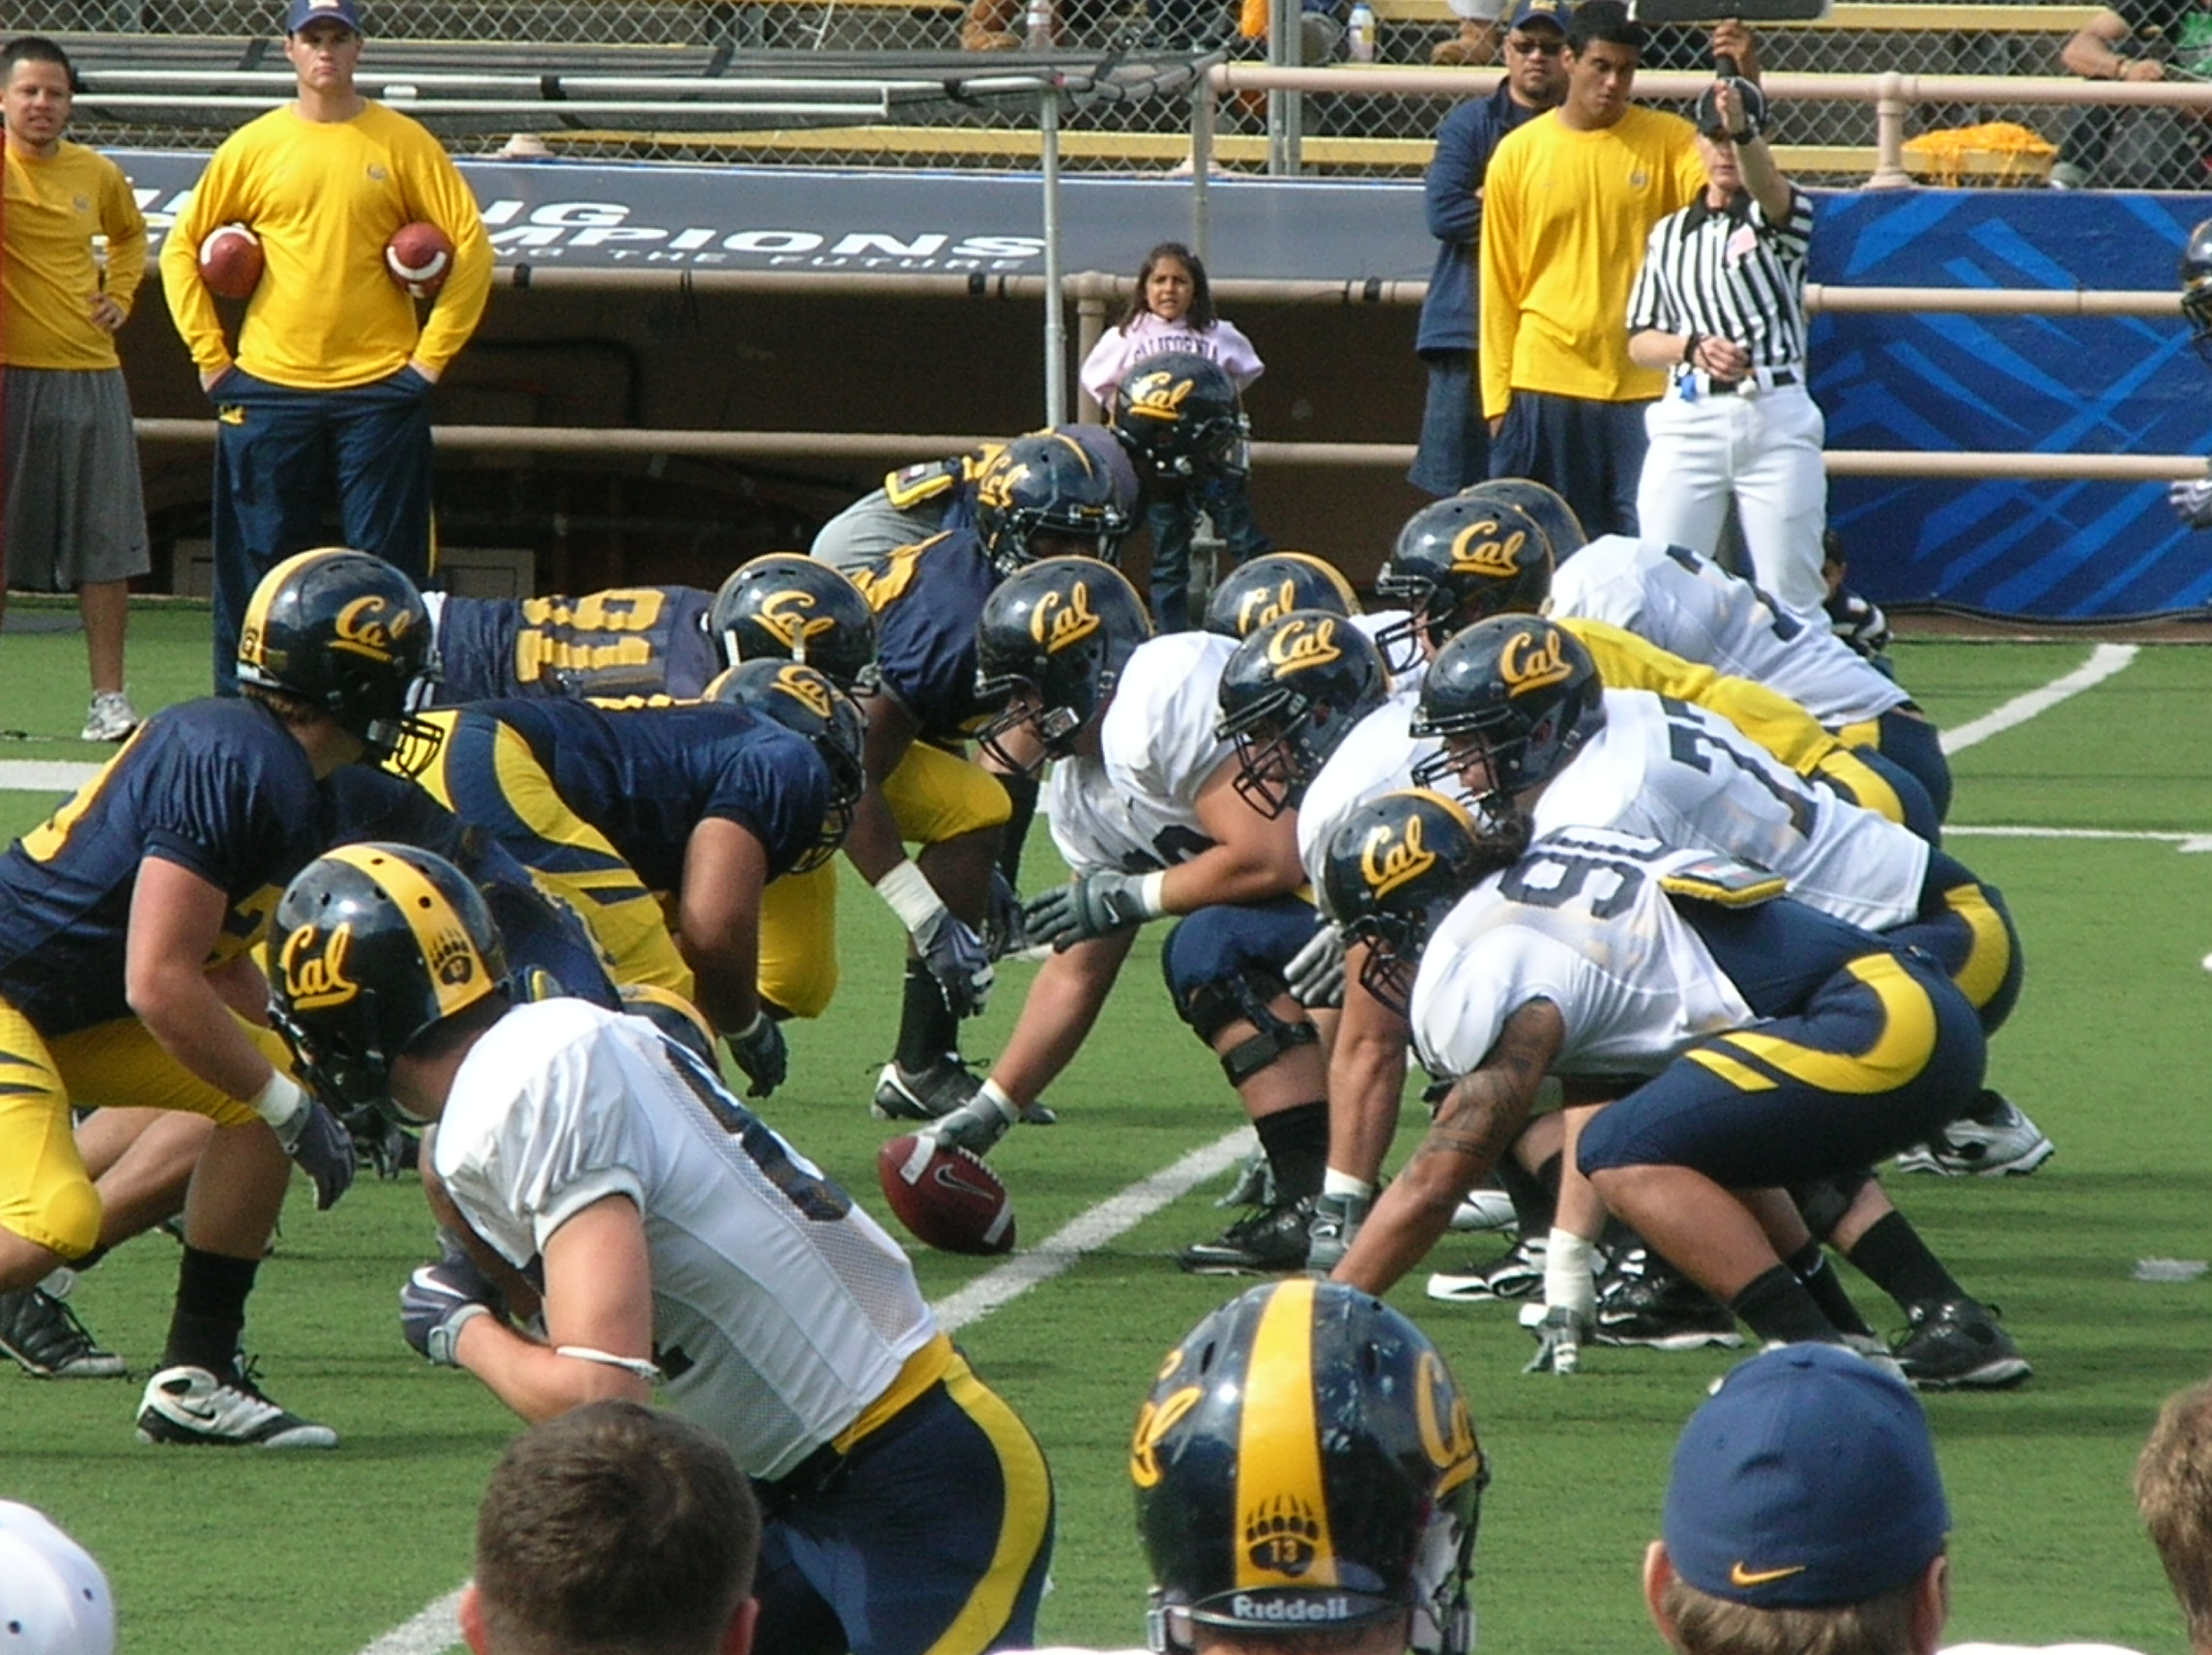 The California Golden Bears football team is the college football team of the University of California Berkeley The team plays its home games at California Memorial